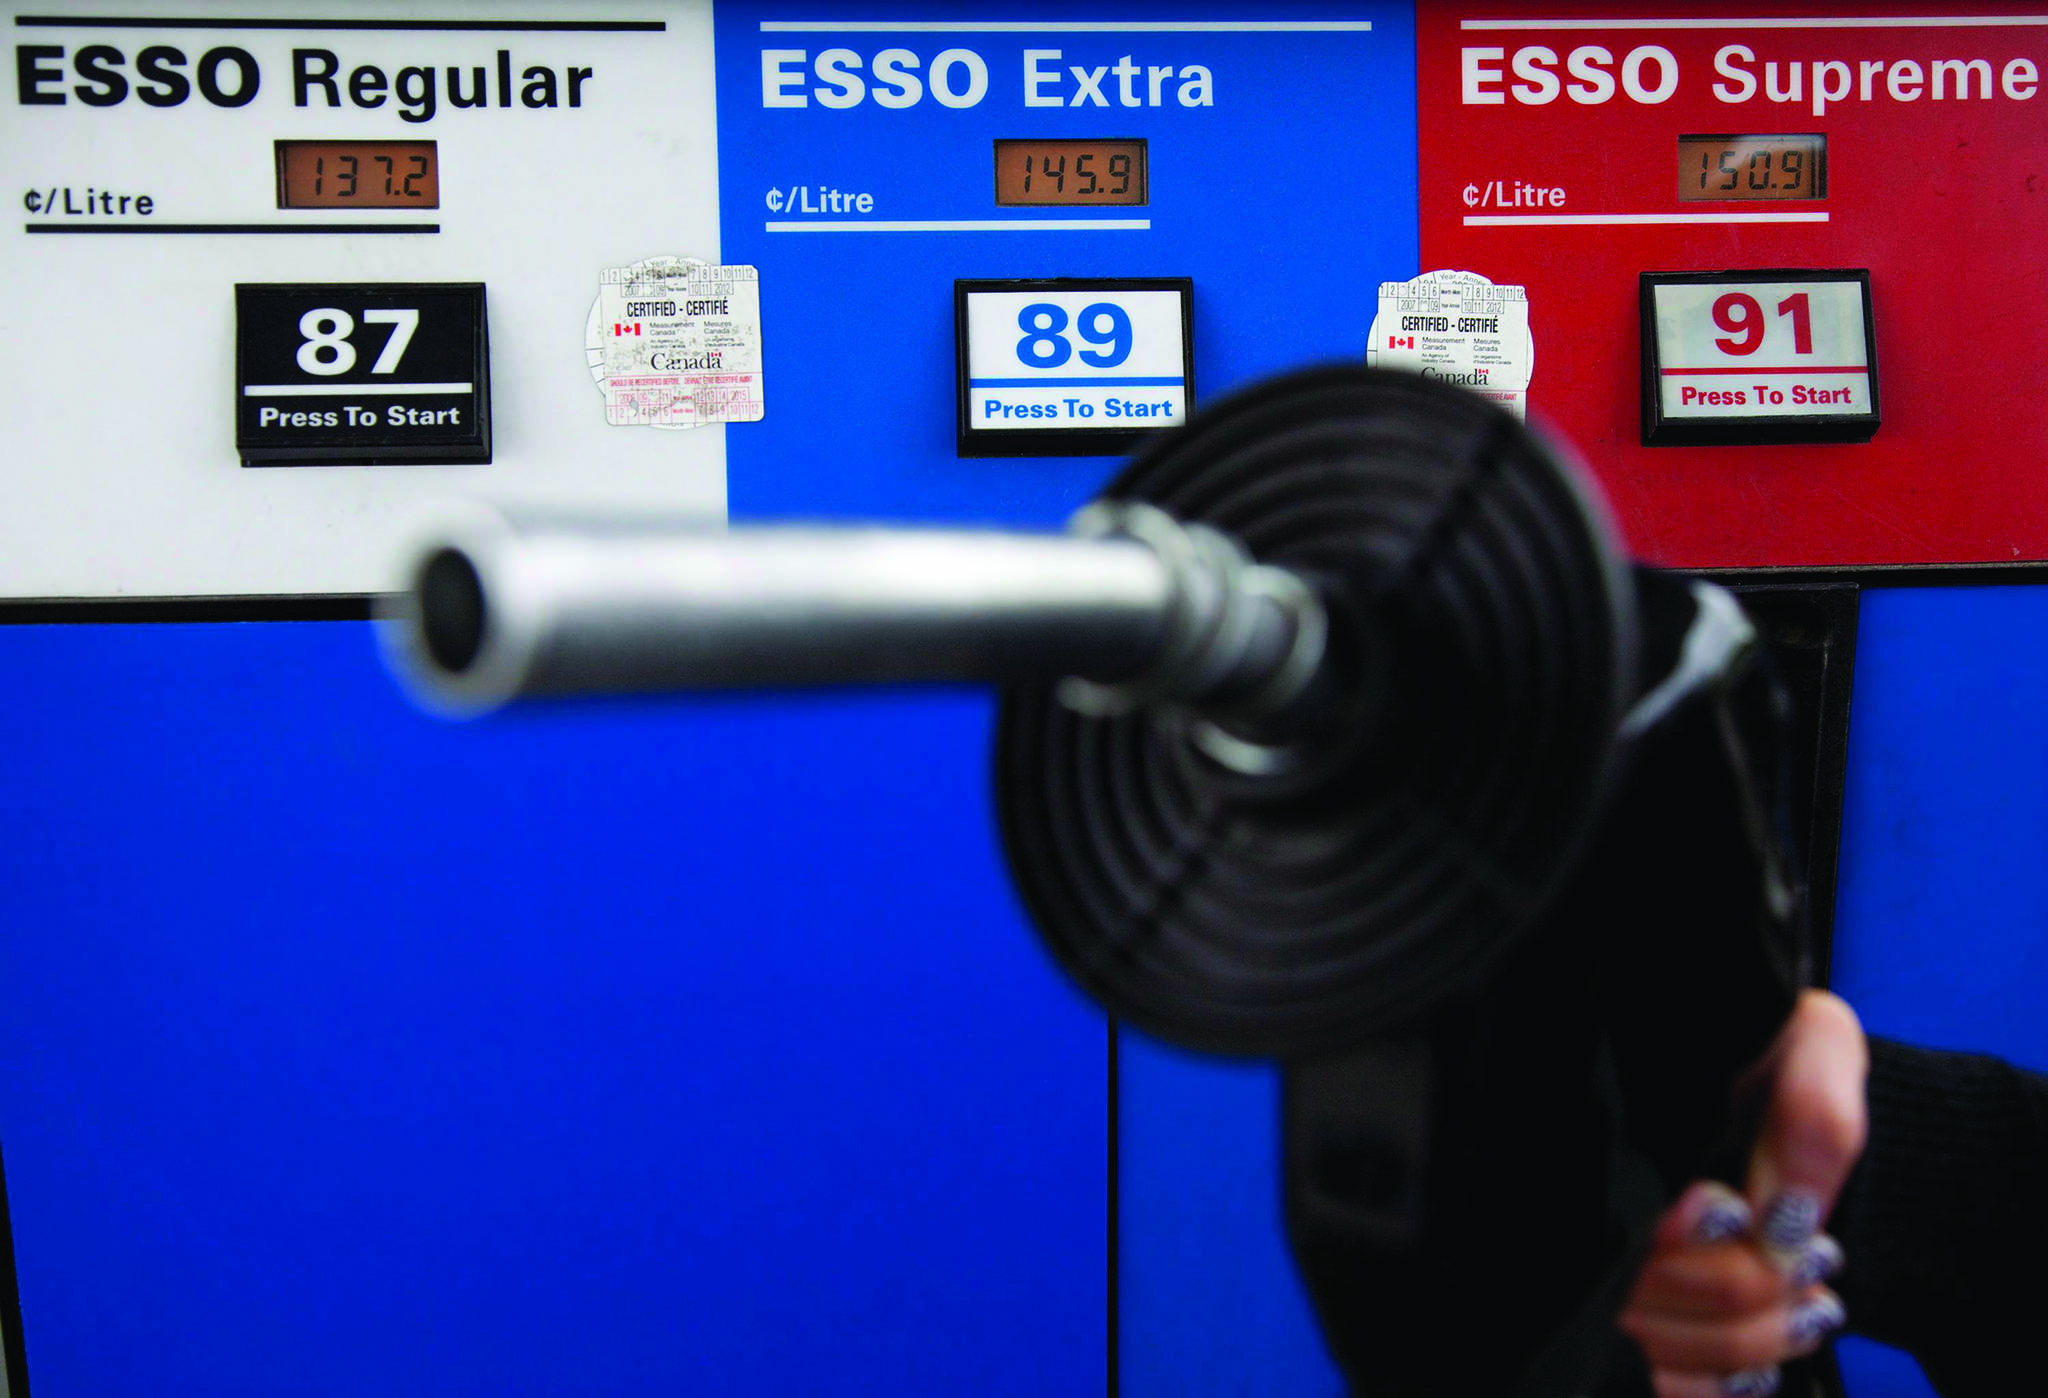 Gas prices are displayed as a motorist prepares to pump gas at a station in North Vancouver on May 10, 2011. Shares in Parkland Fuel Corp., Canada's largest independent fuel marketer, are up after it increased its adjusted 2019 earnings guidance on the back of strong third-quarter results. The Calgary-based company says it now expects its adjusted earnings before interest, taxation, depreciation and amortization will be $75 million higher than previously forecast, at $1.24 billion. The company which sells gasoline and diesel under brands including Fas Gas, Chevron, Esso, Ultramar and Pioneer, and operates On The Run convenience stores, reported third-quarter net earnings of $26 million, down from $49 million in the year-earlier period. THE CANADIAN PRESS/Jonathan Hayward